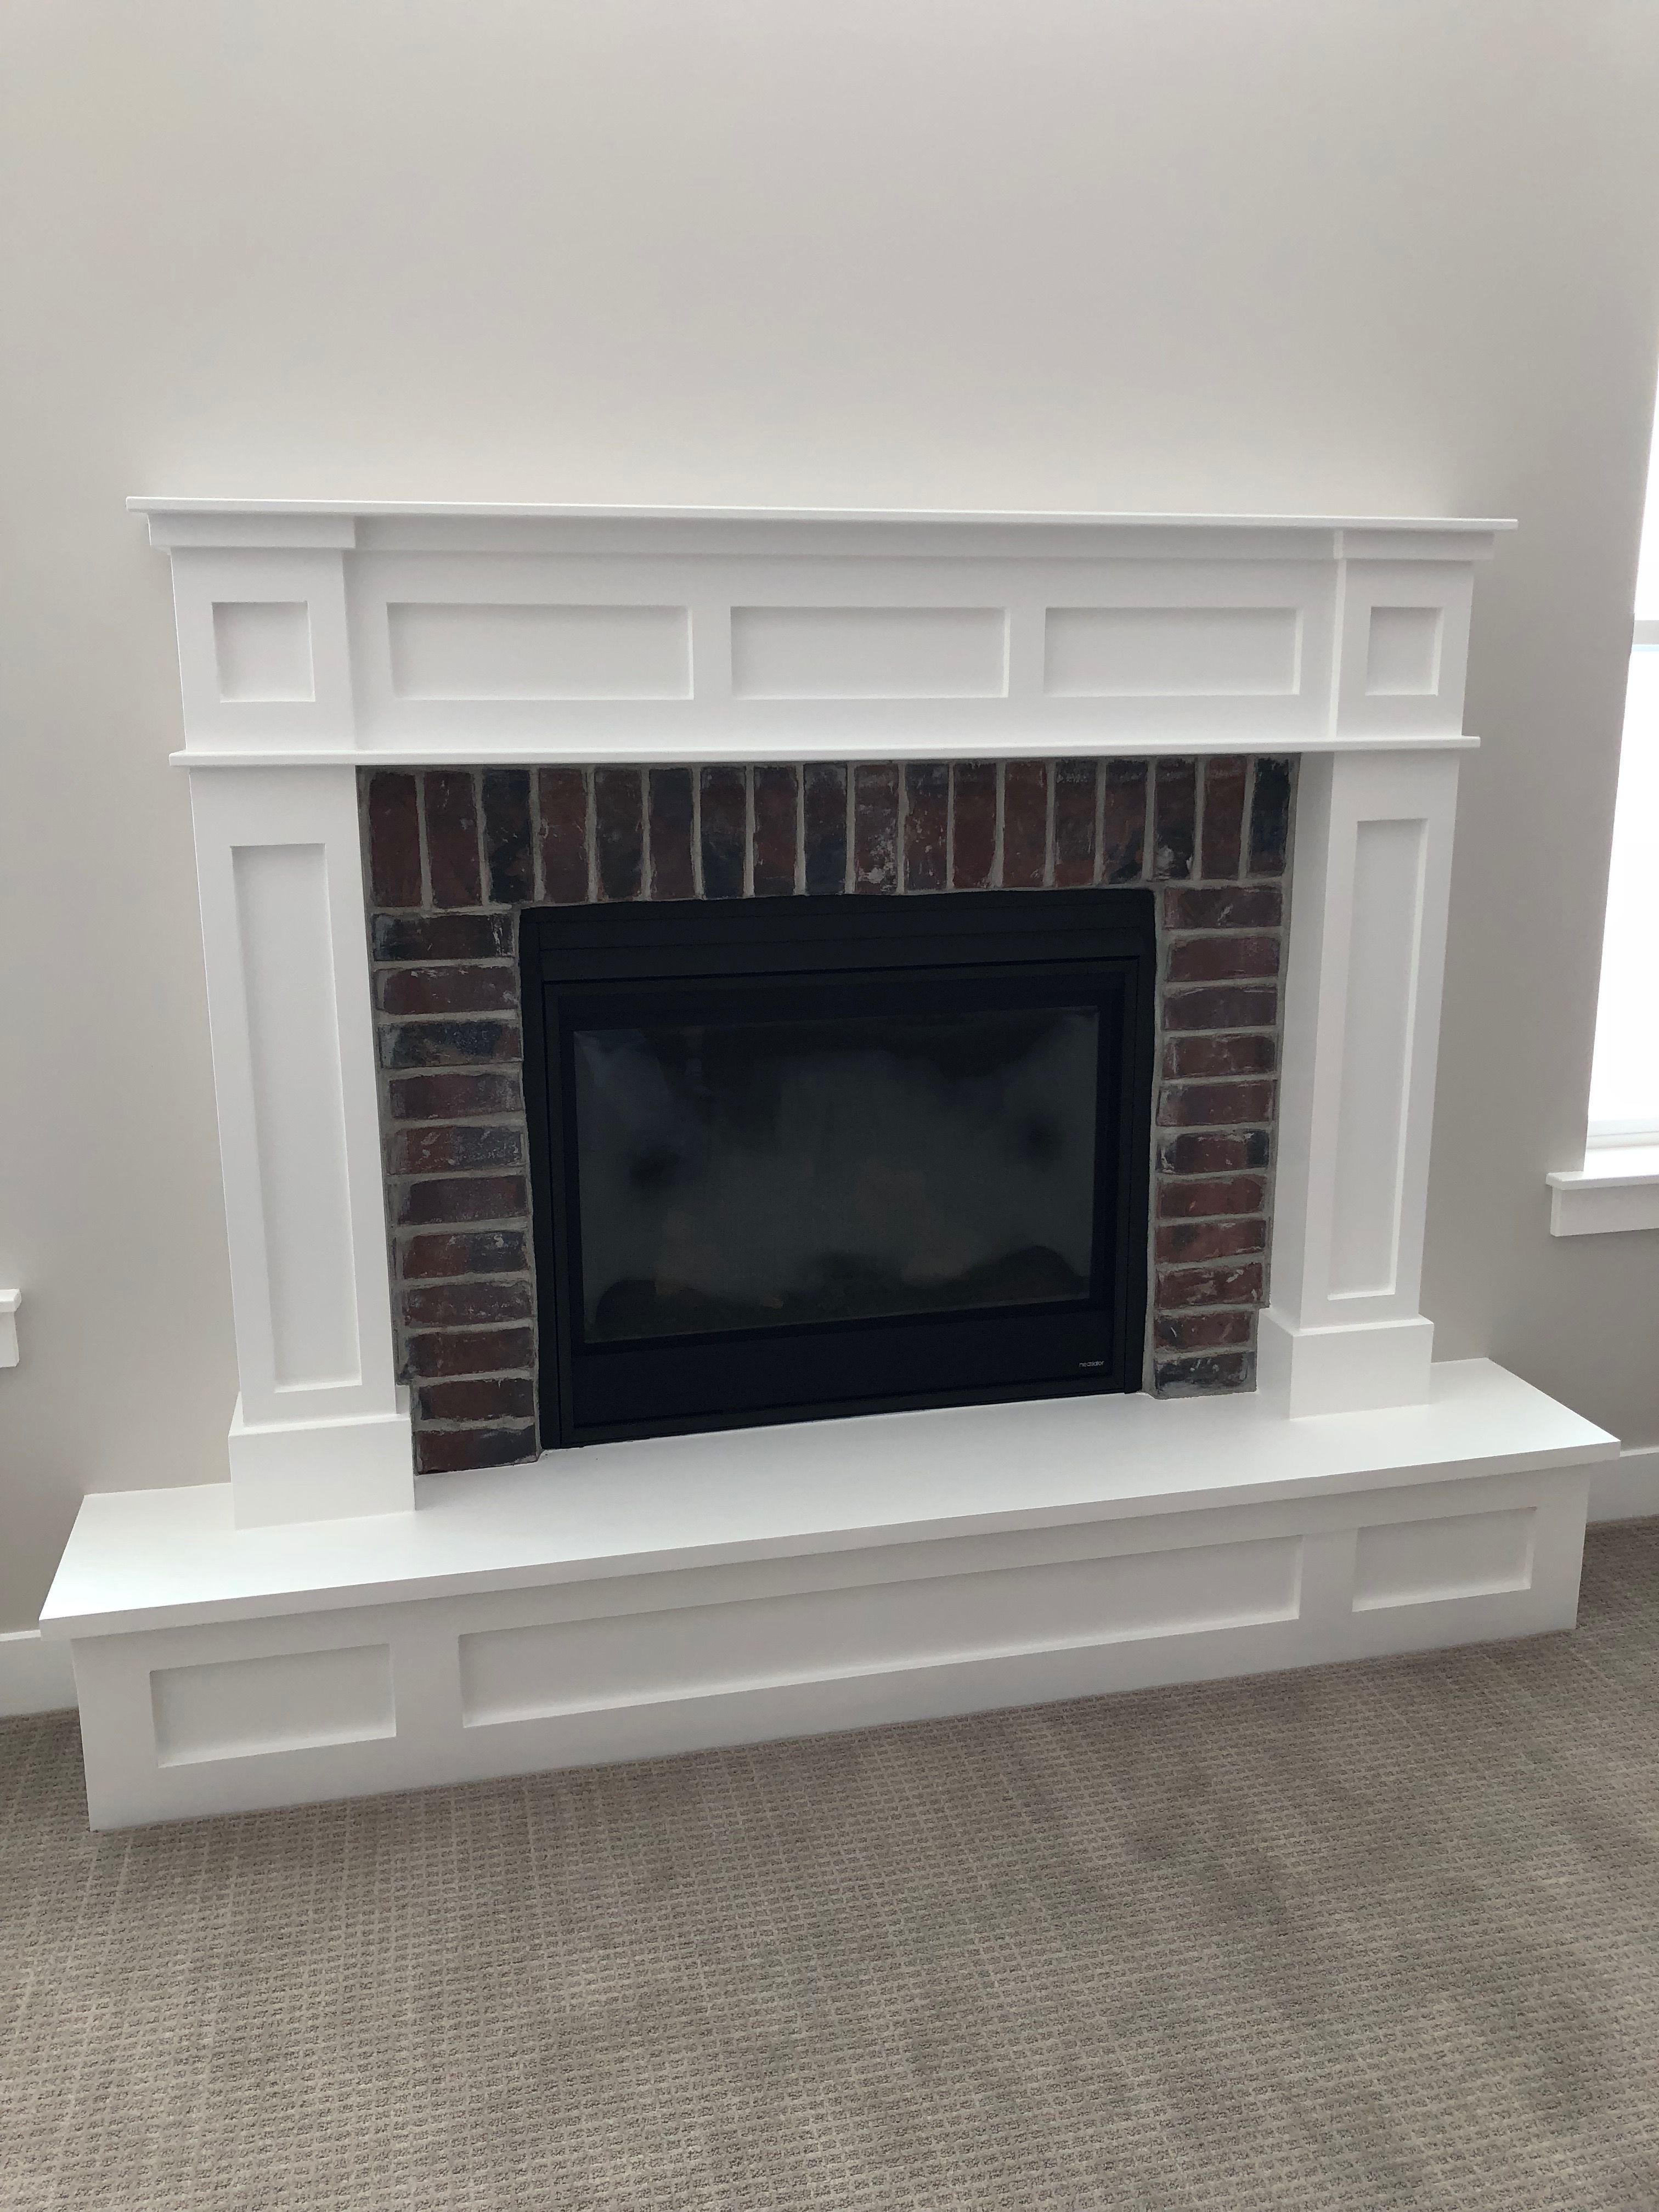 Our fireplace mantle and raised hearth White Craftsman